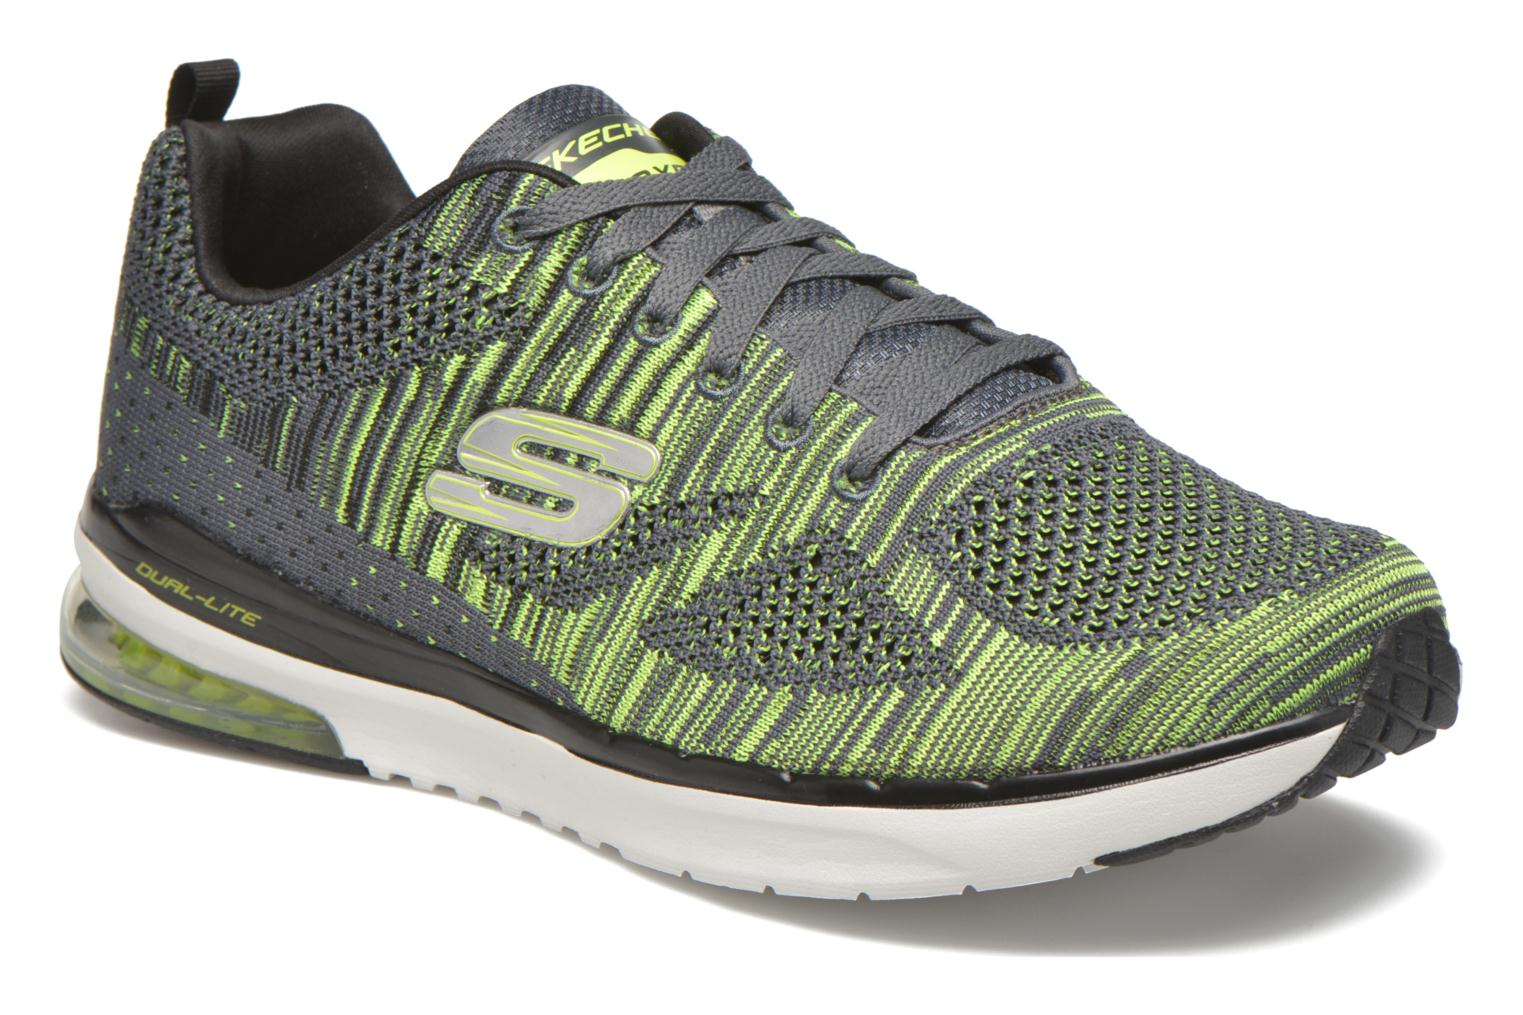 Skech-Air Infinity-R Charcoal & Lime